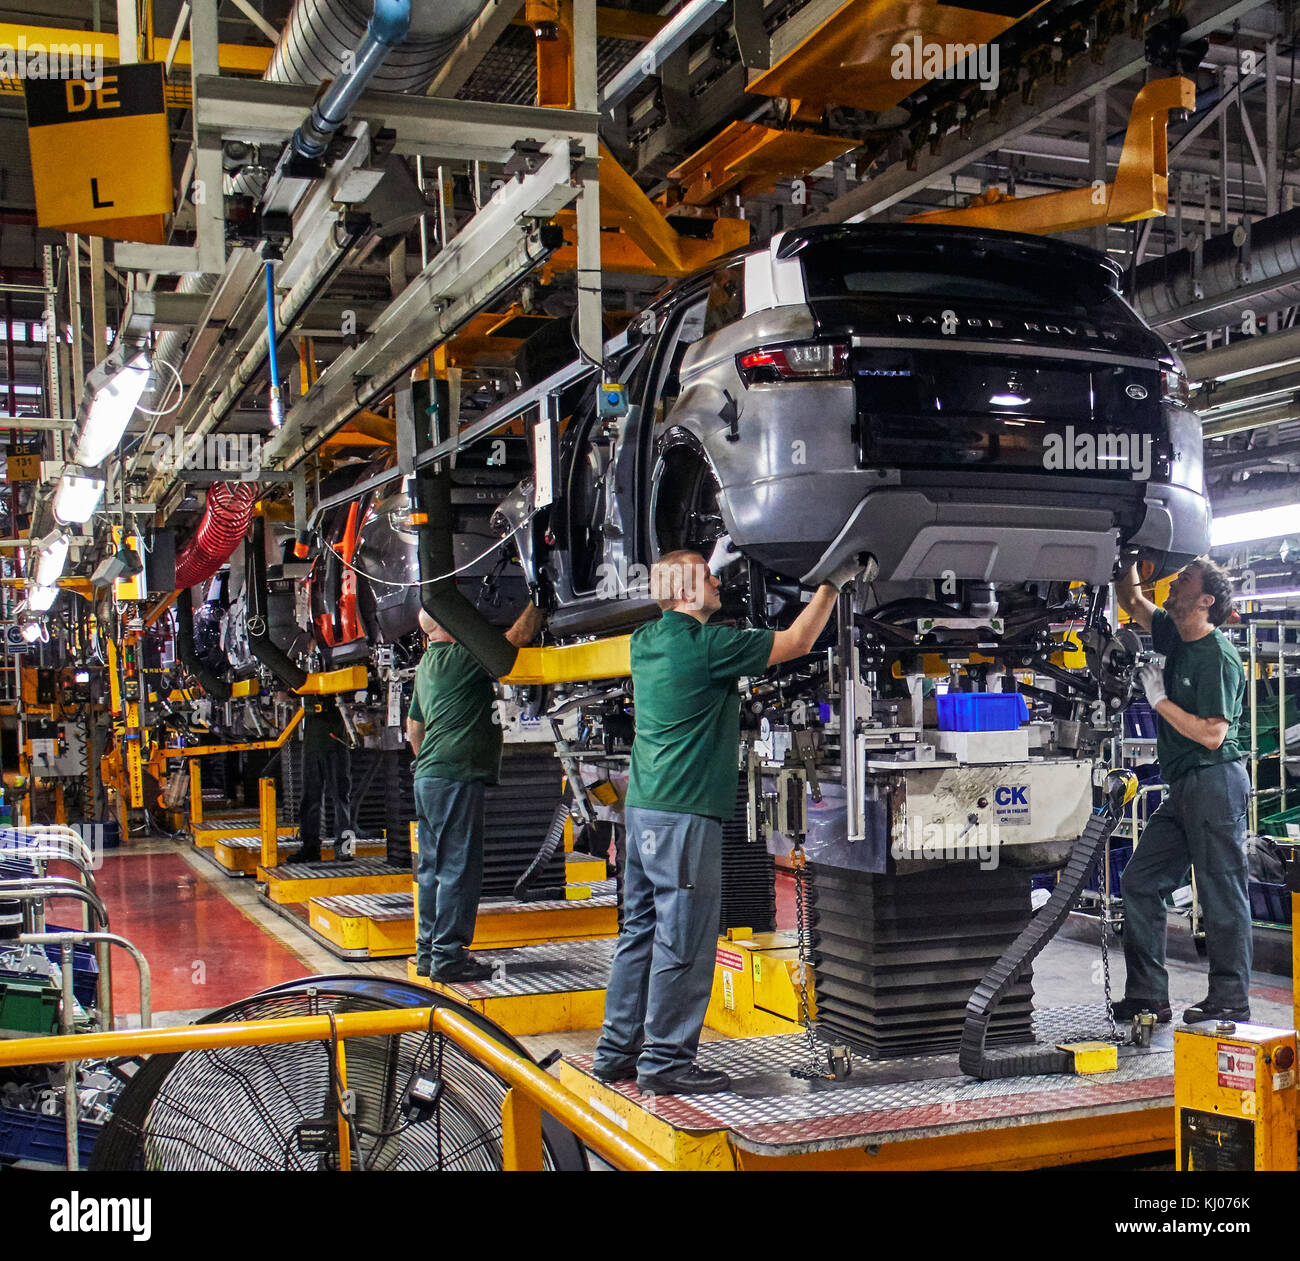 Workers on engine production line in car factory - Stock Image